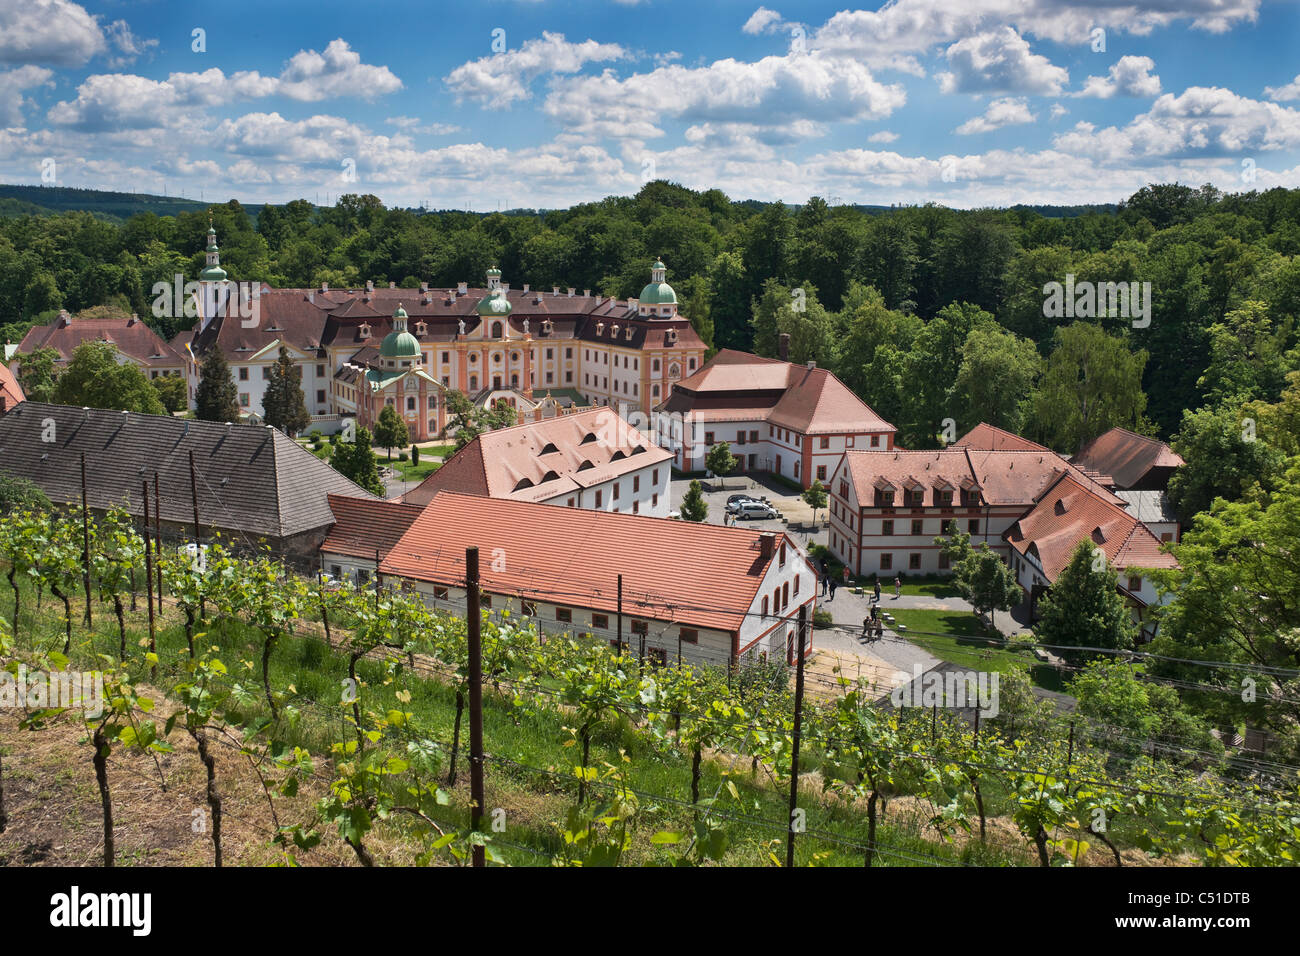 kloster st marienthal ostritz monastery st marienthal ostritz stock photo 37526843 alamy. Black Bedroom Furniture Sets. Home Design Ideas